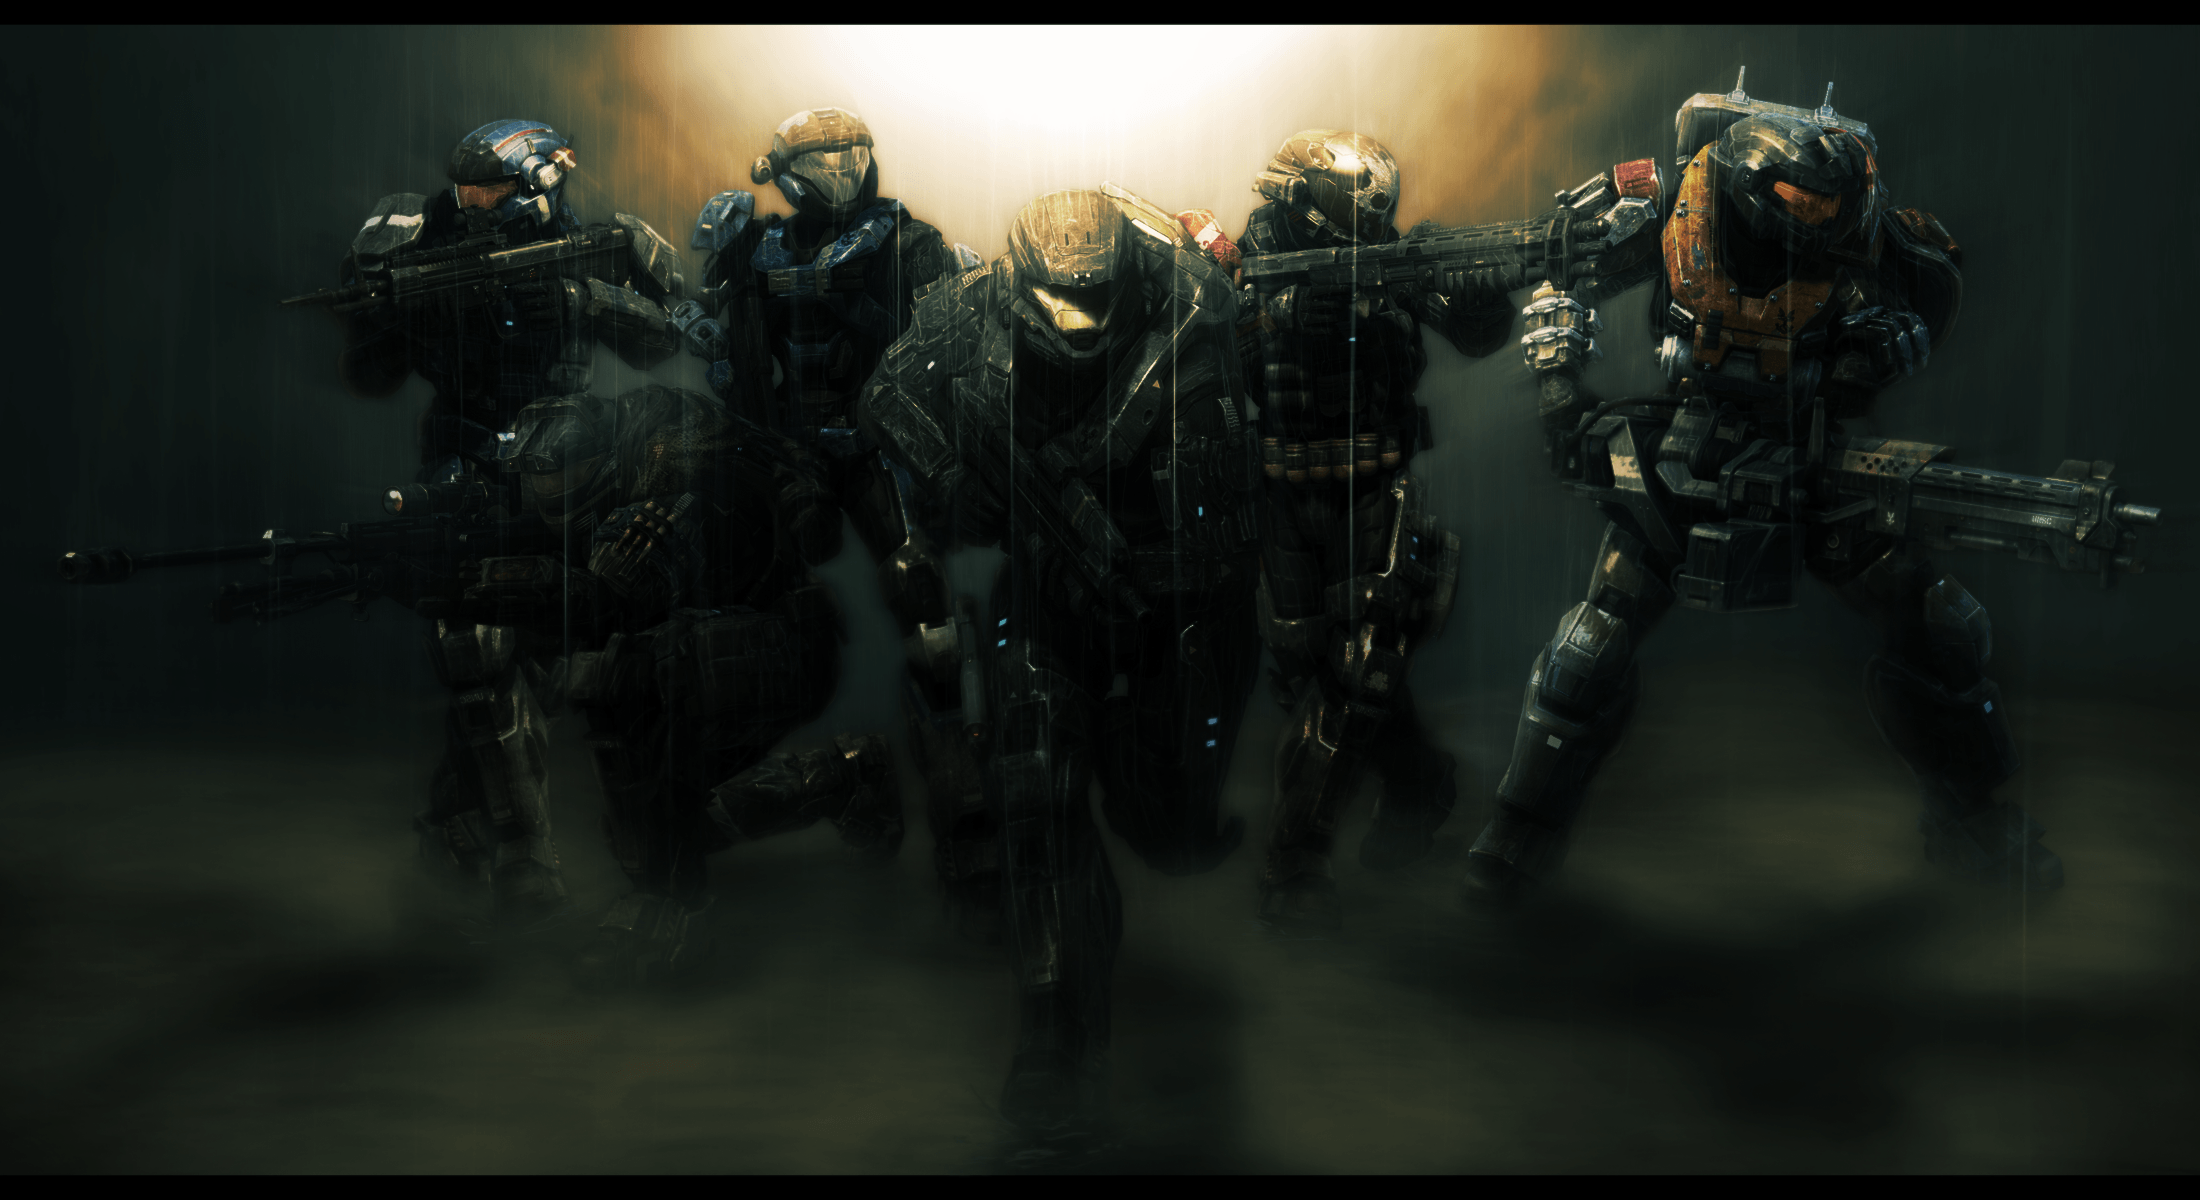 Halo Reach Club Images HD Wallpaper And Background Photos